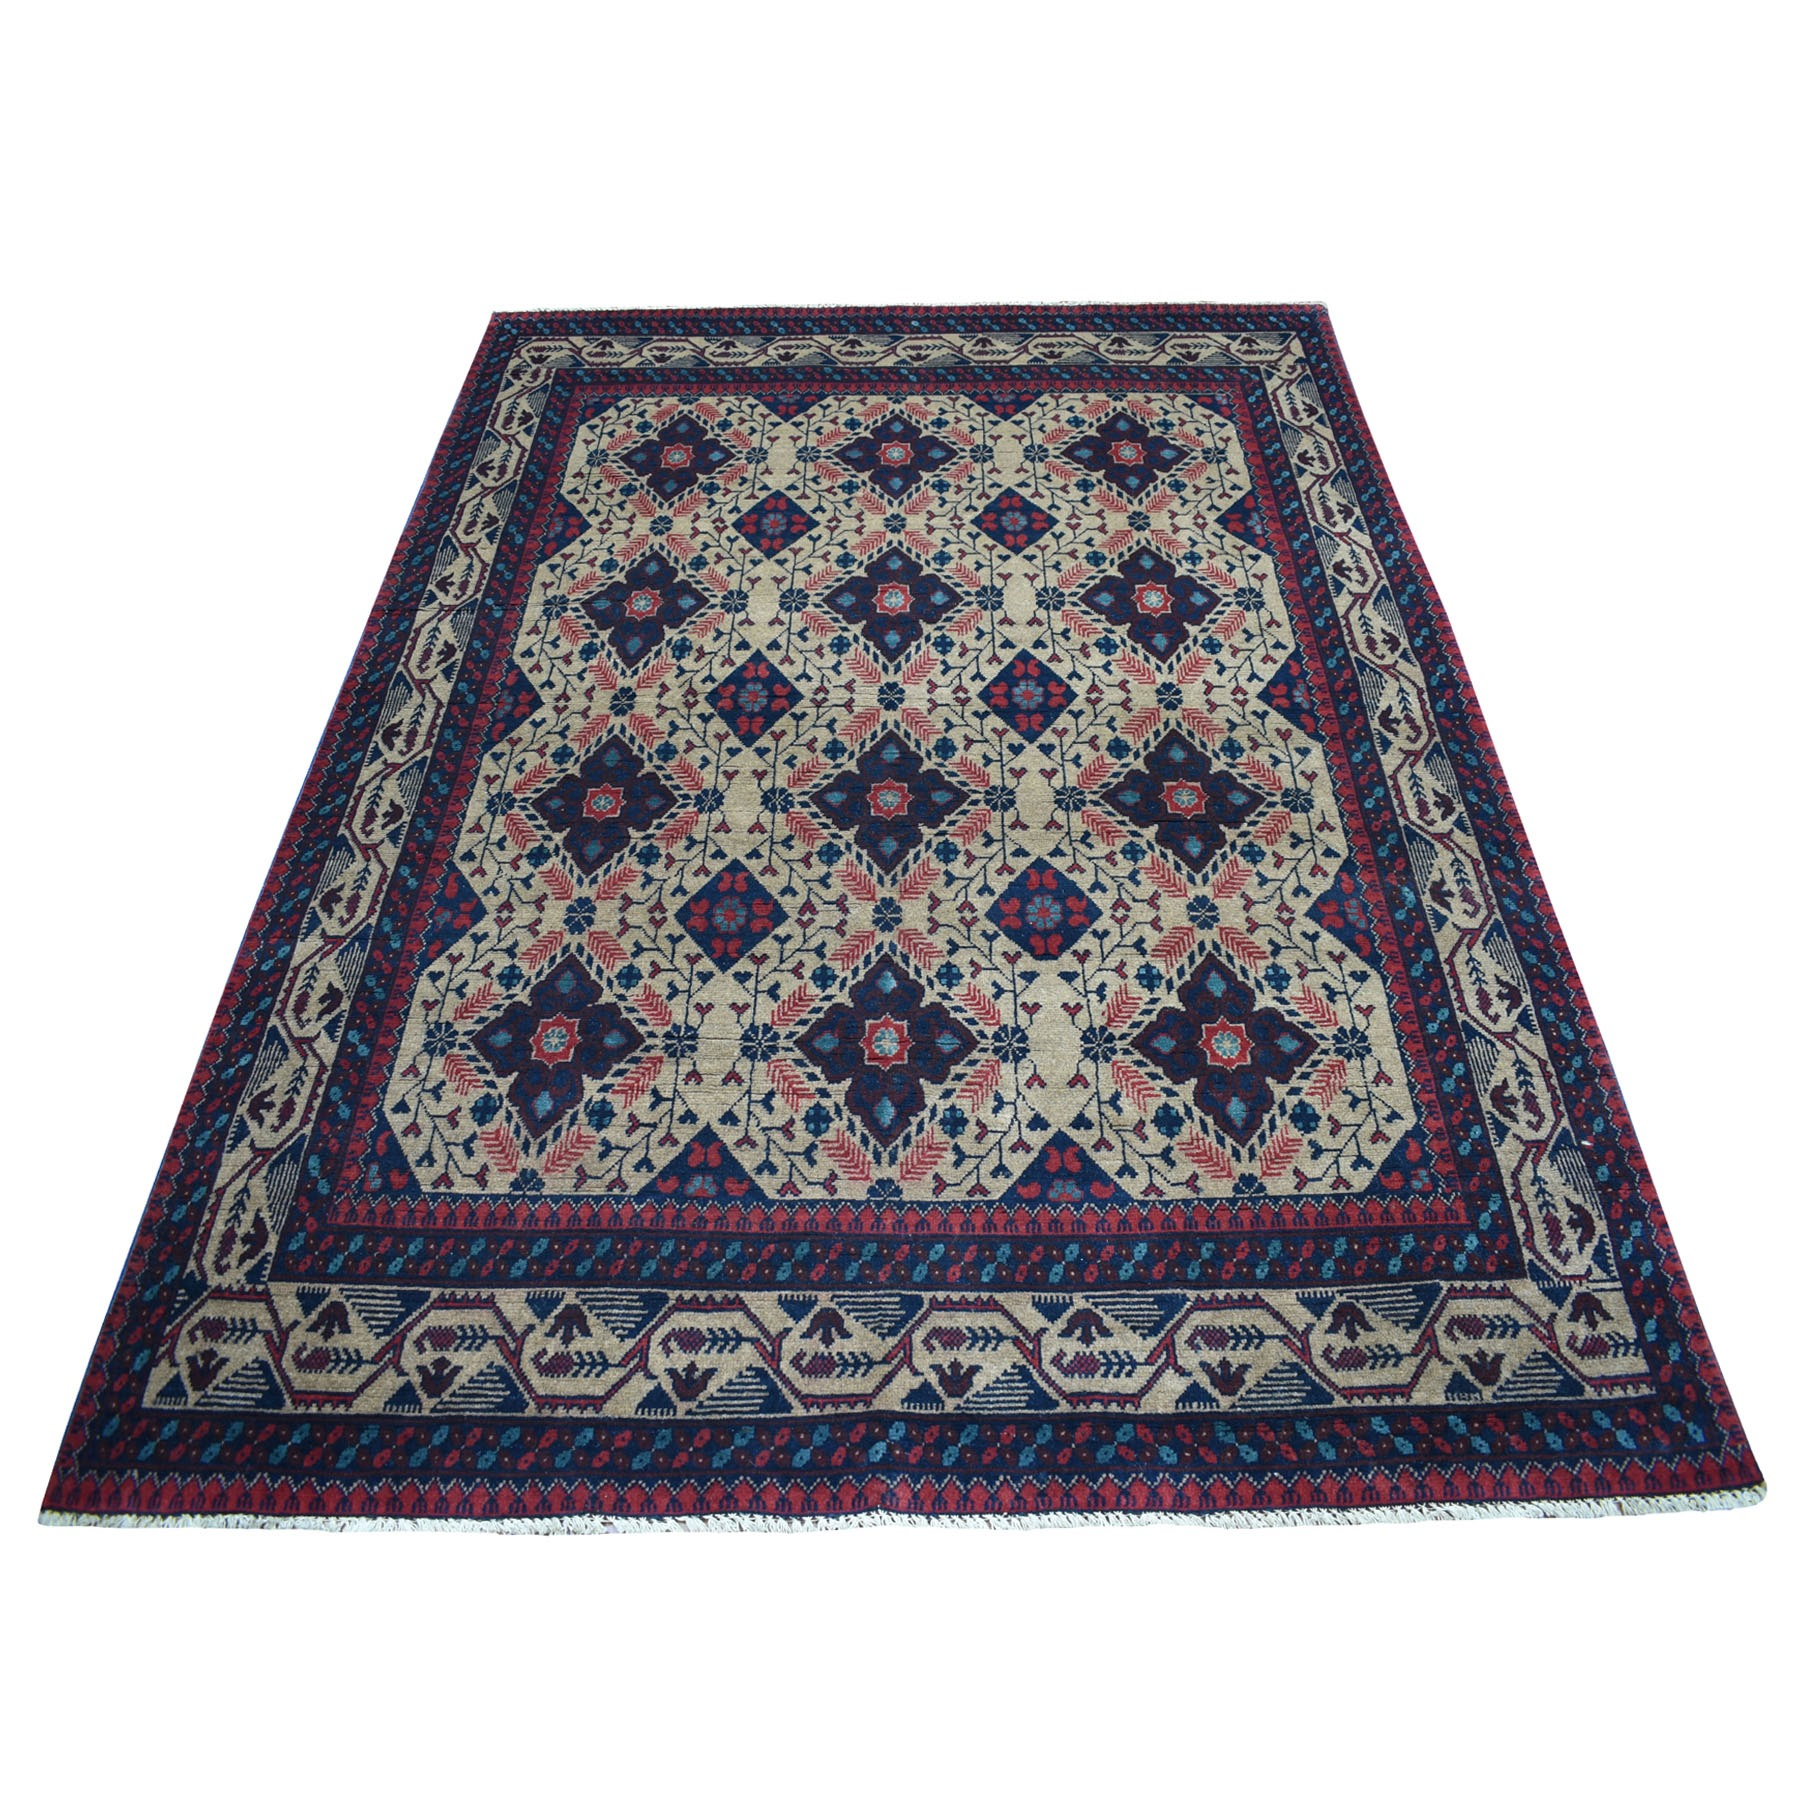 "5'6""X7'2"" Vintage Look Geometric Afghan Andkhoy Pure Wool Hand Knotted Oriental Rug moaecd00"